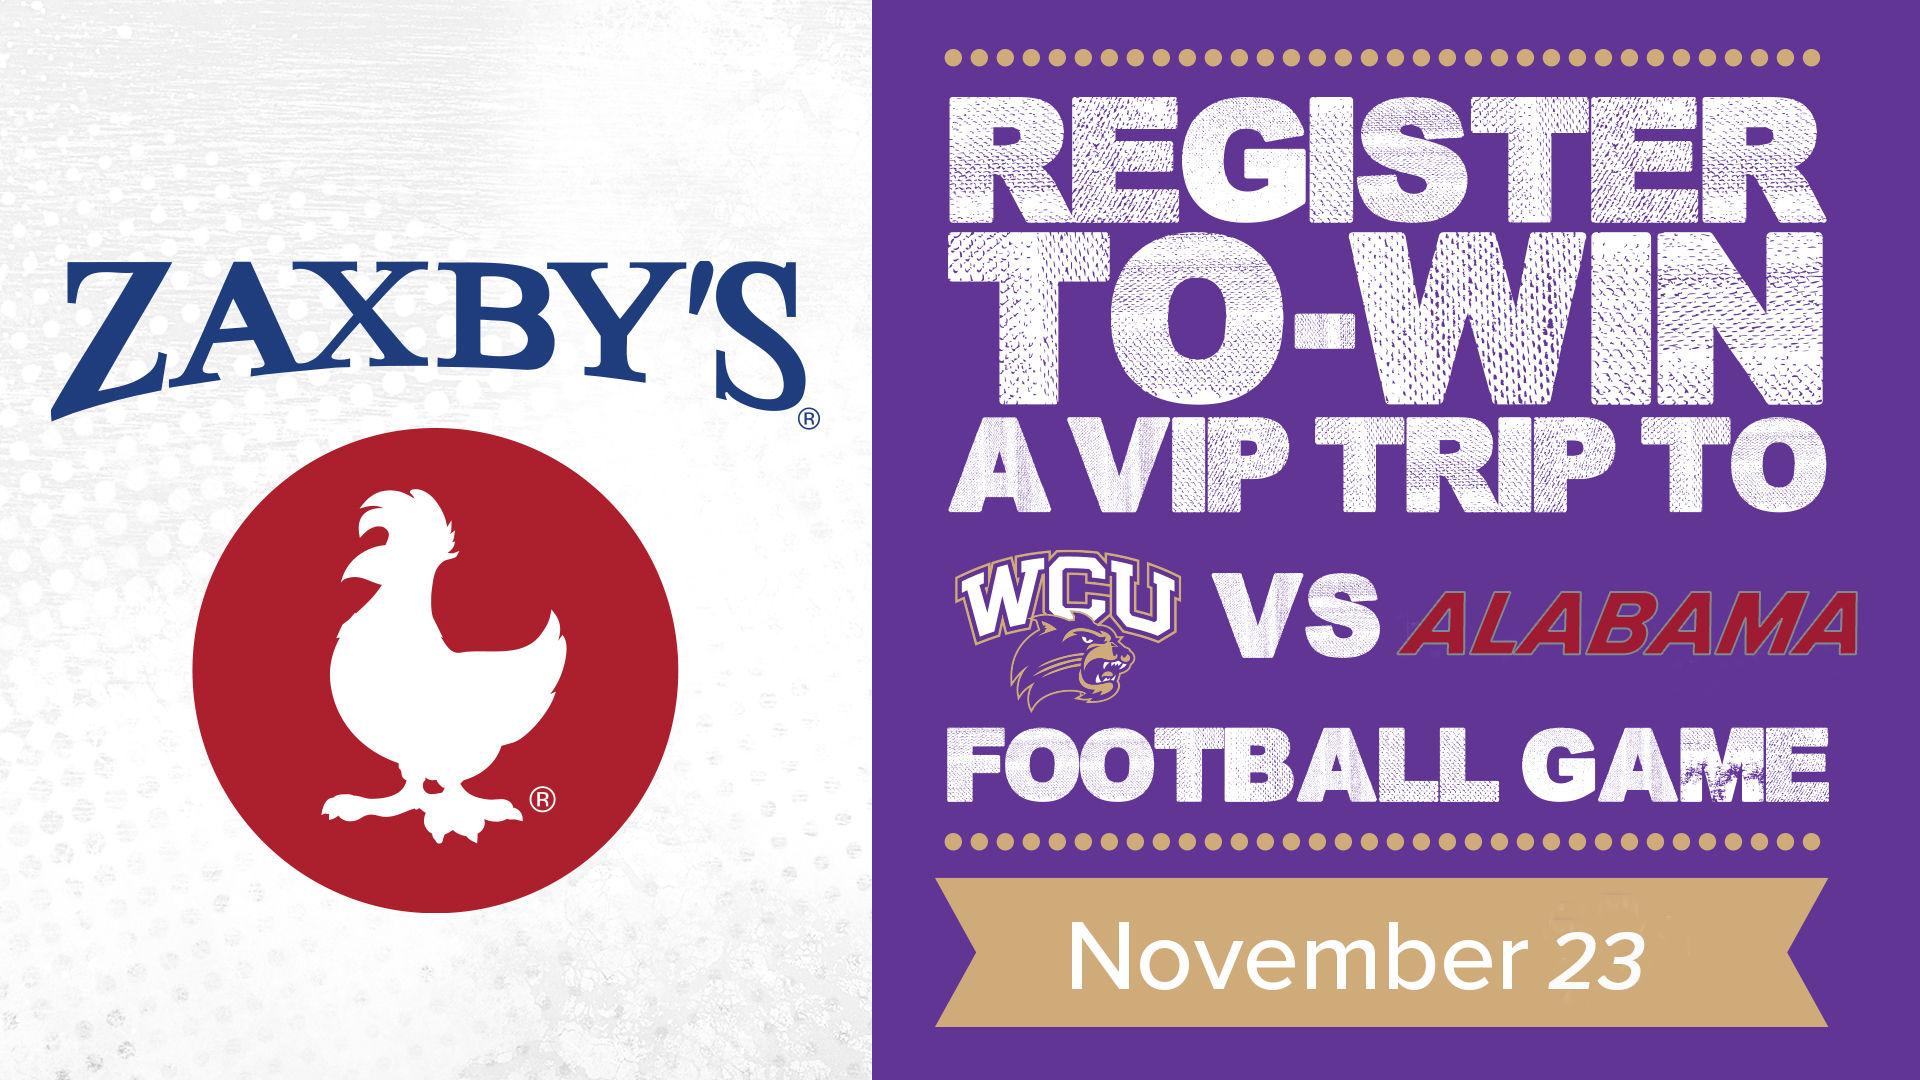 Zaxby's VIP Giveaway to WCU at Alabama Football Game ... on chuck e cheese map, longhorn steakhouse map, chic fil a map, bojangles map, petco map, motel 6 map, quiznos map, ihop map, cici's pizza map, little caesars map, panera bread map, kfc map, papa johns map, golden corral map, chipotle map,